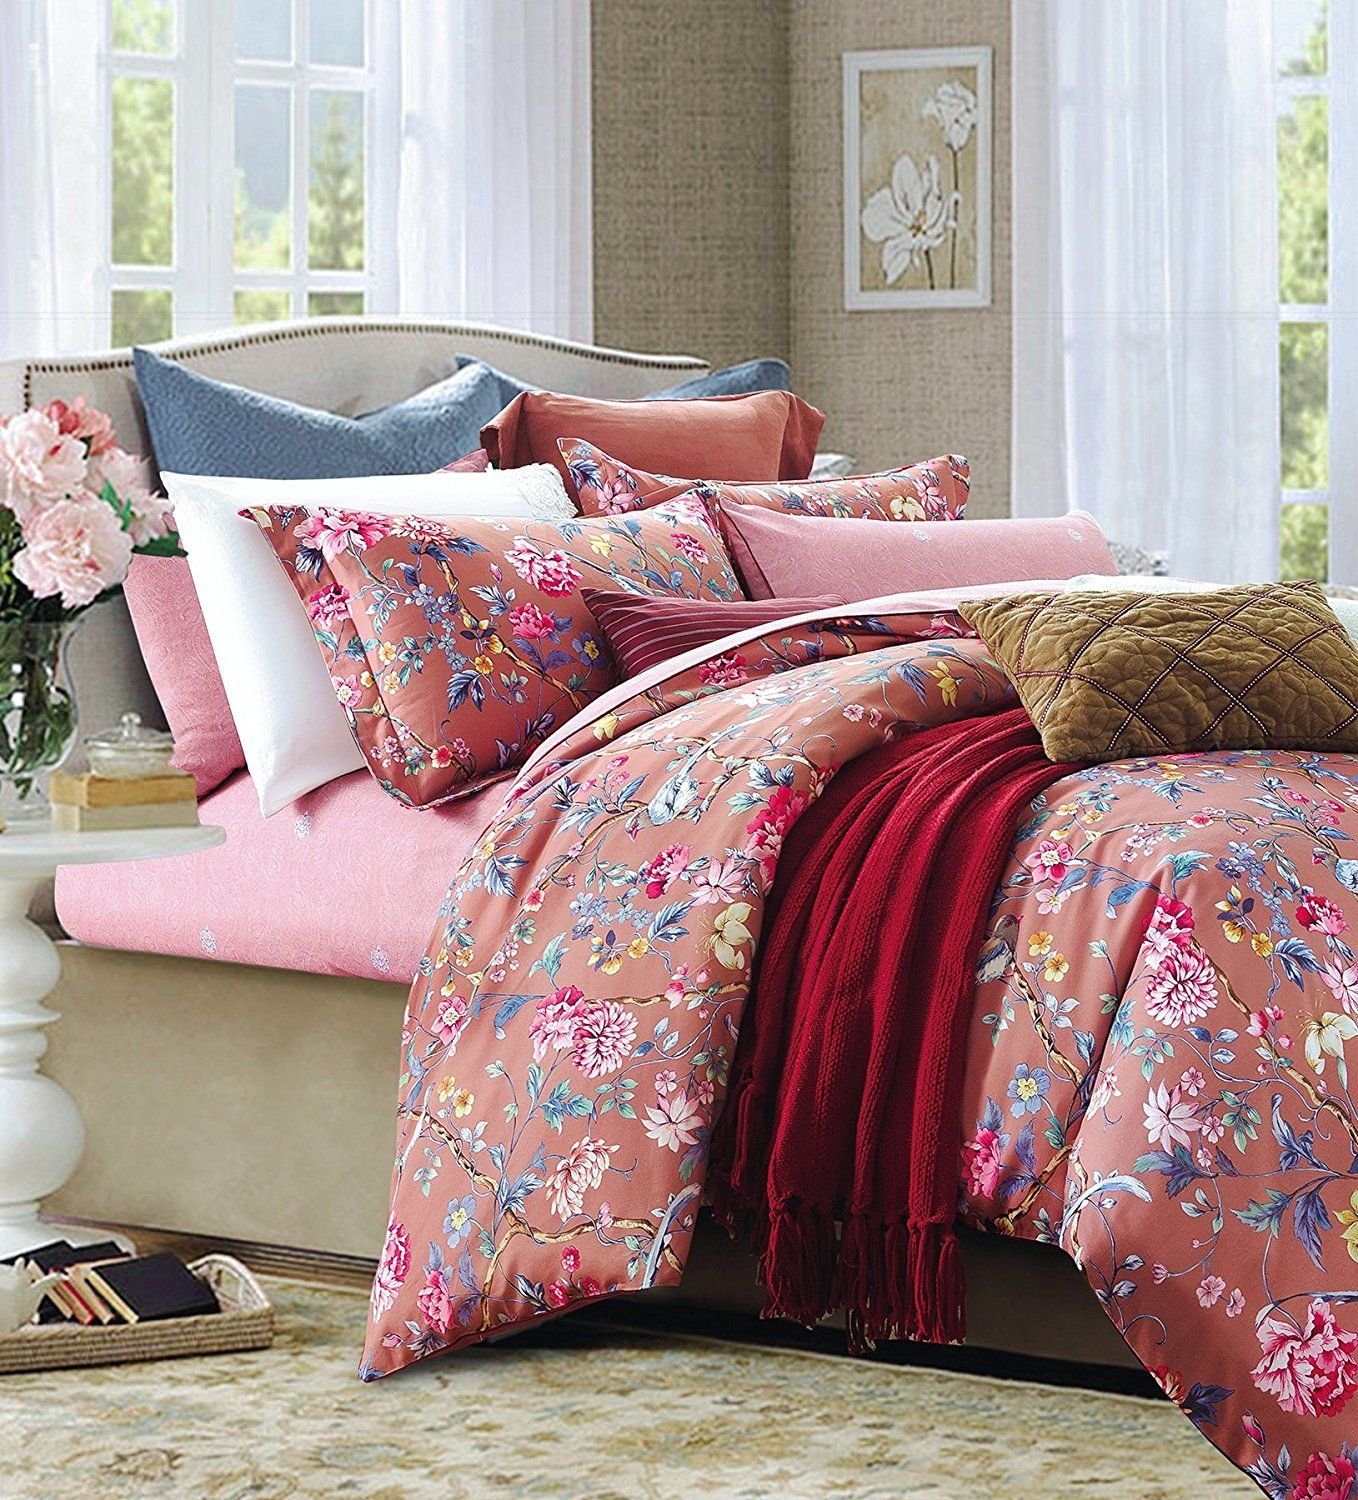 girls teen sets and pink with style rose dusty ease bedding unique comforter rainbow colorful prism green pattern set blue